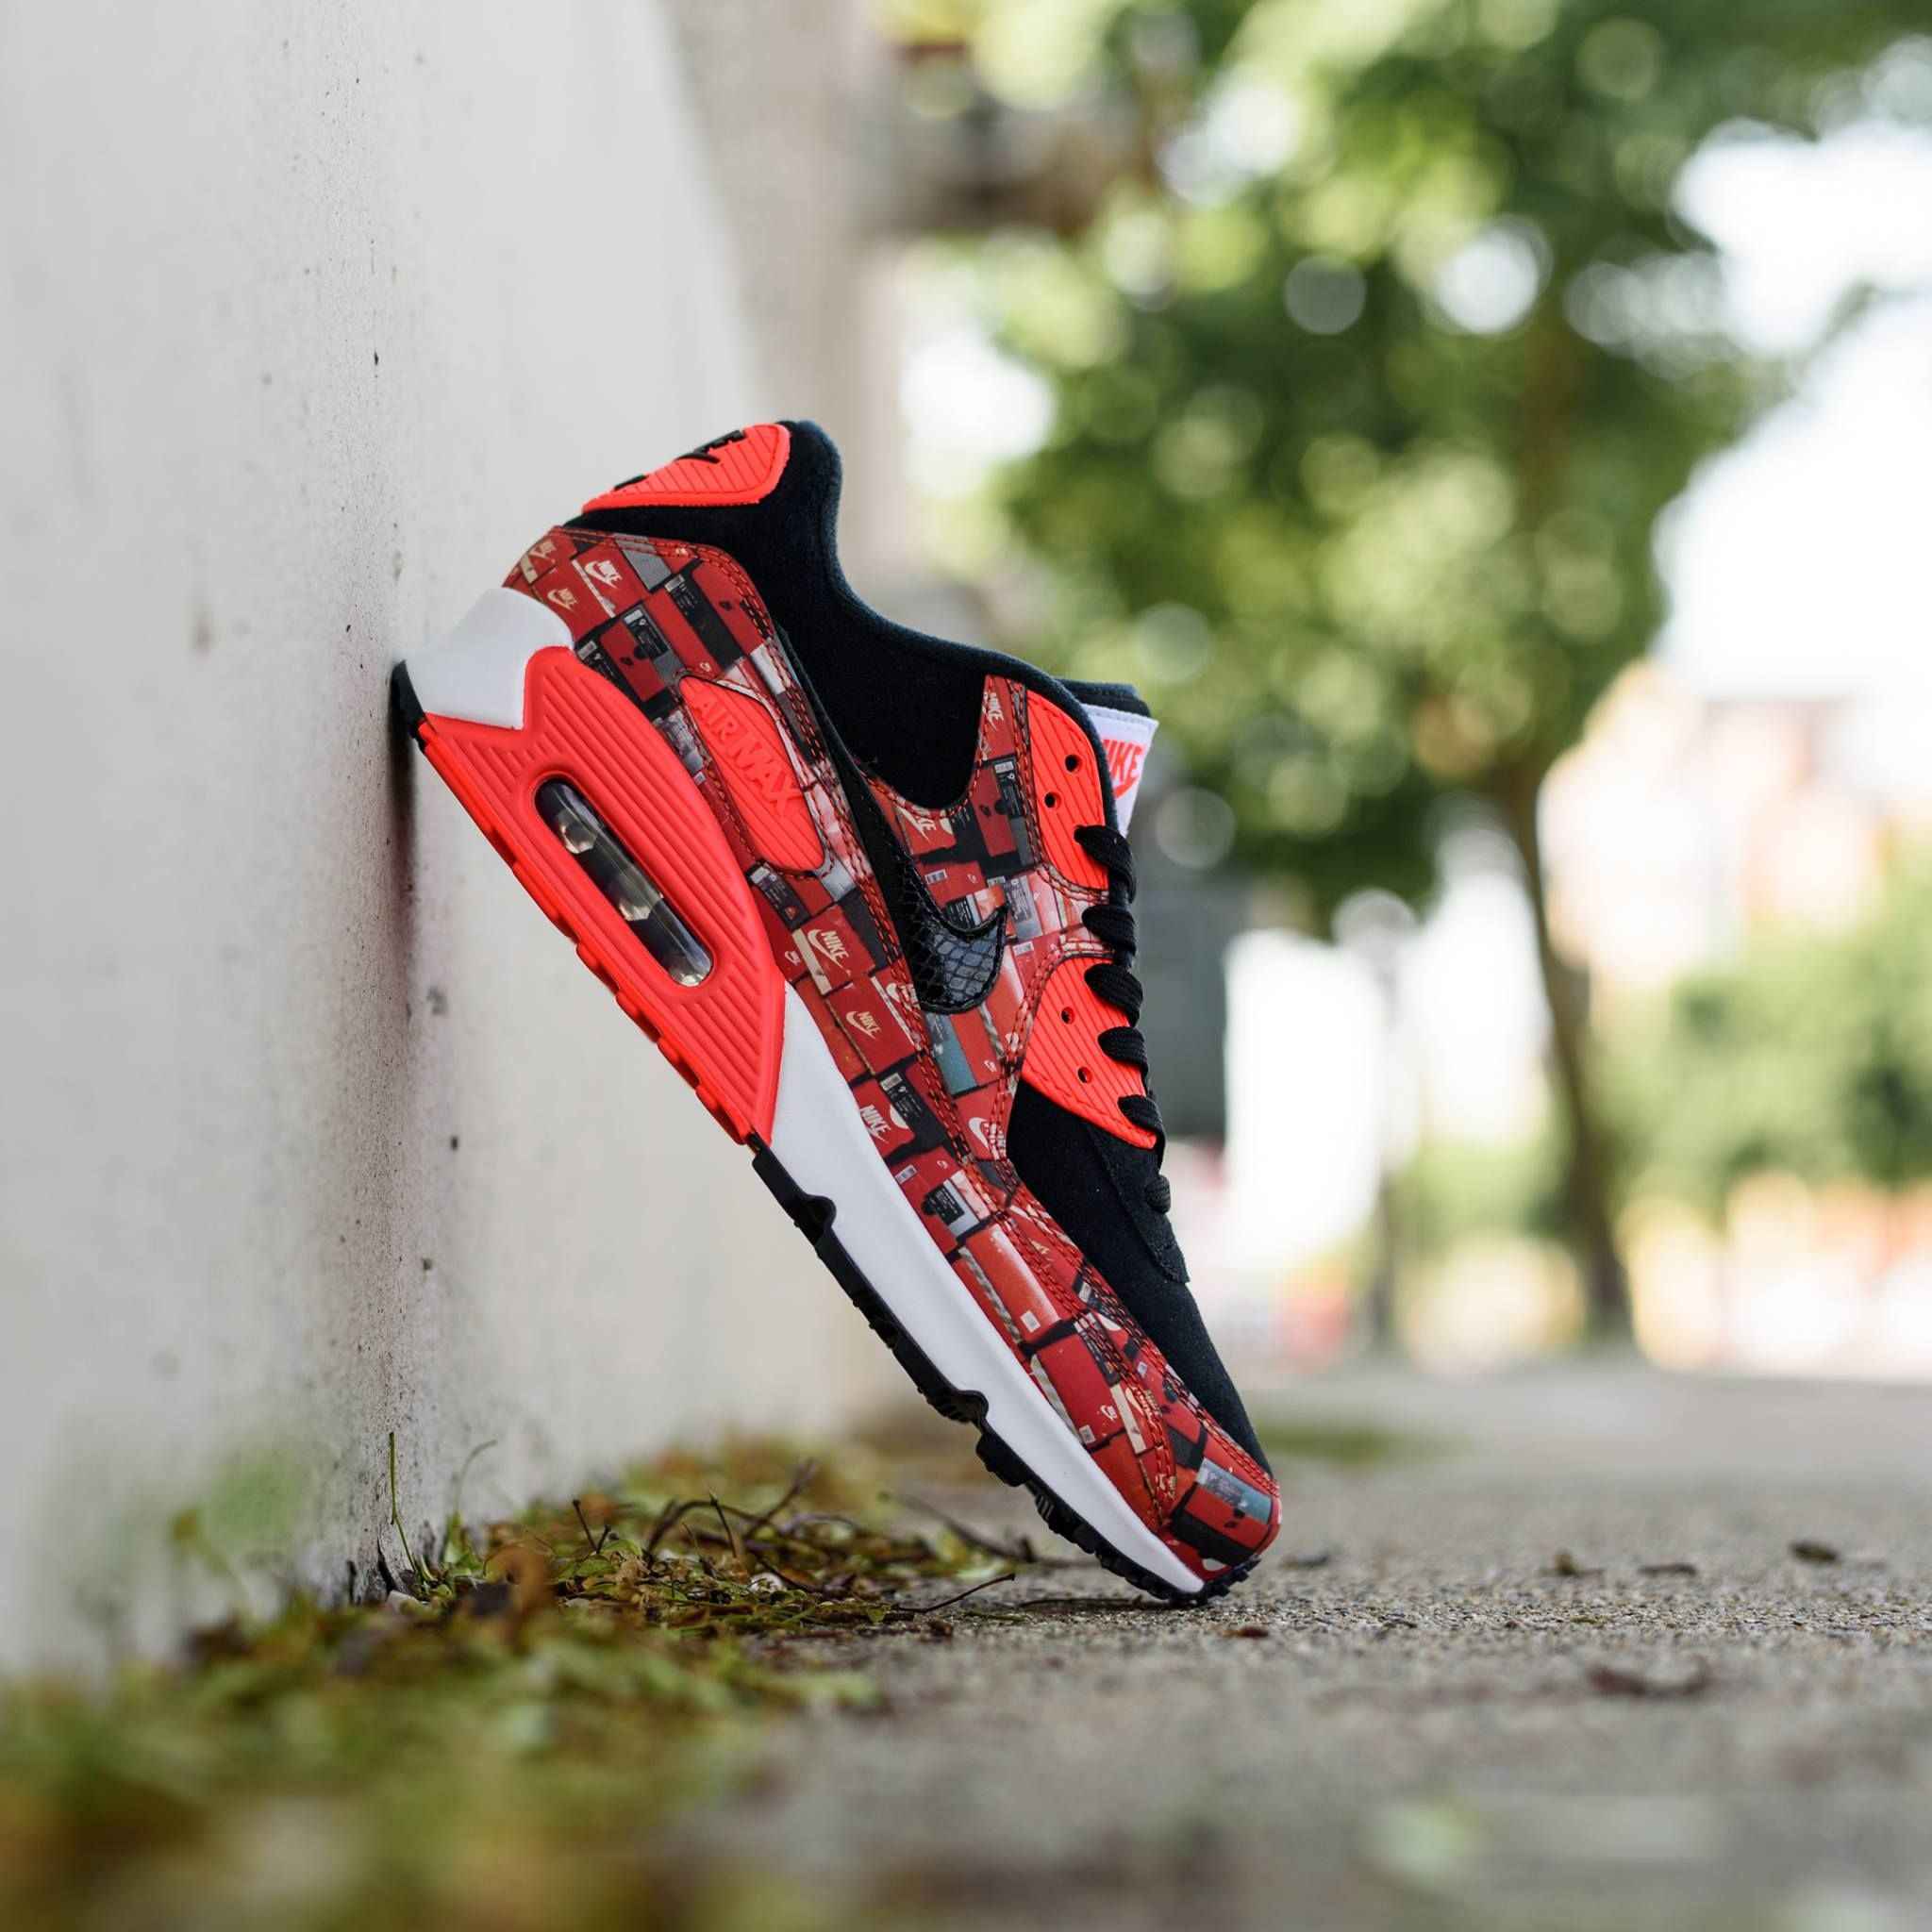 Renowned Japanese sneaker retailer Atmos dropped another